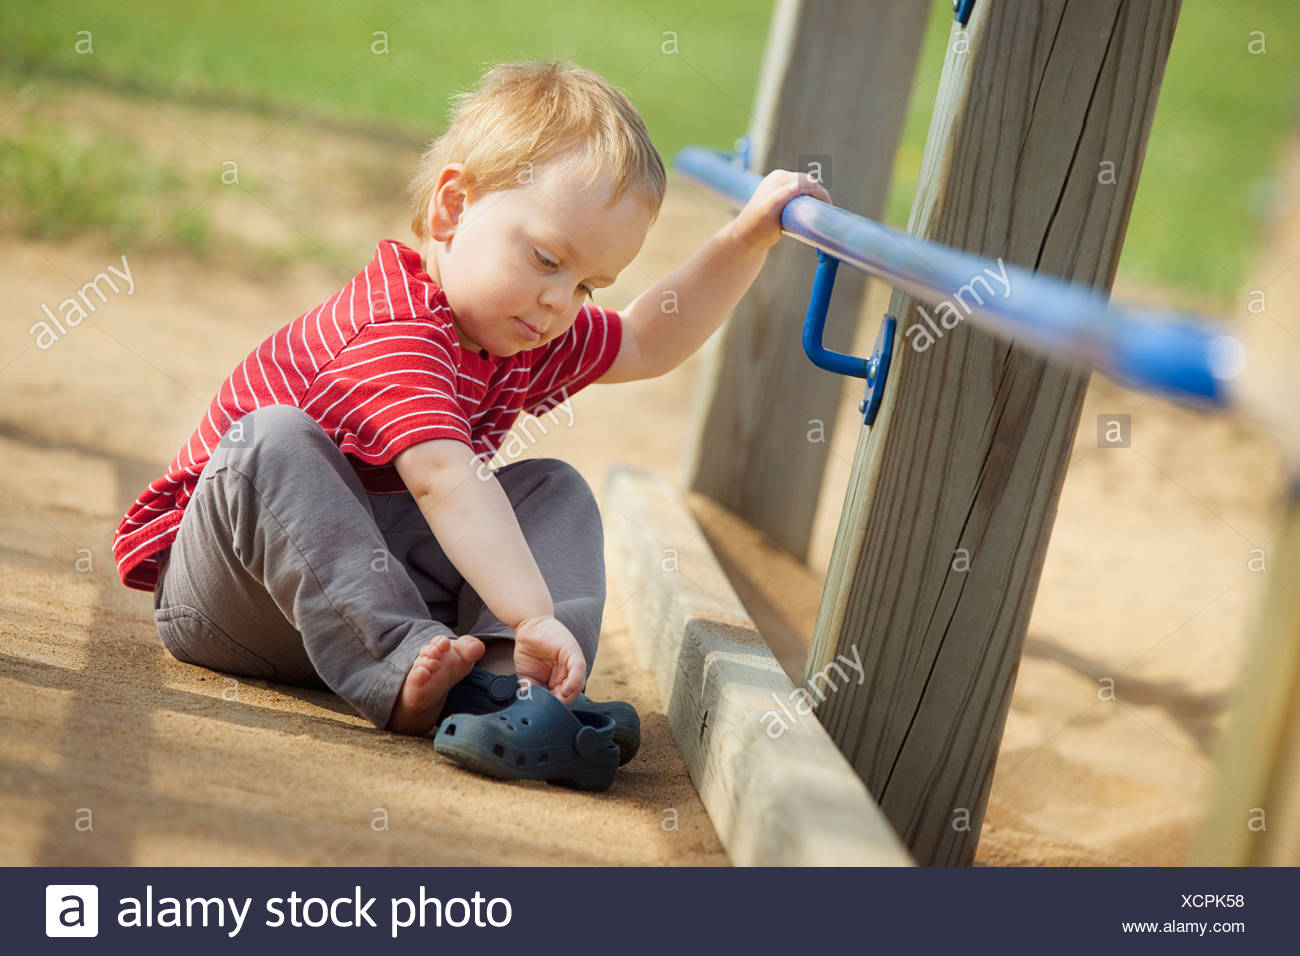 Young Boy Taking Off His Shoes At The Park - Stock Image